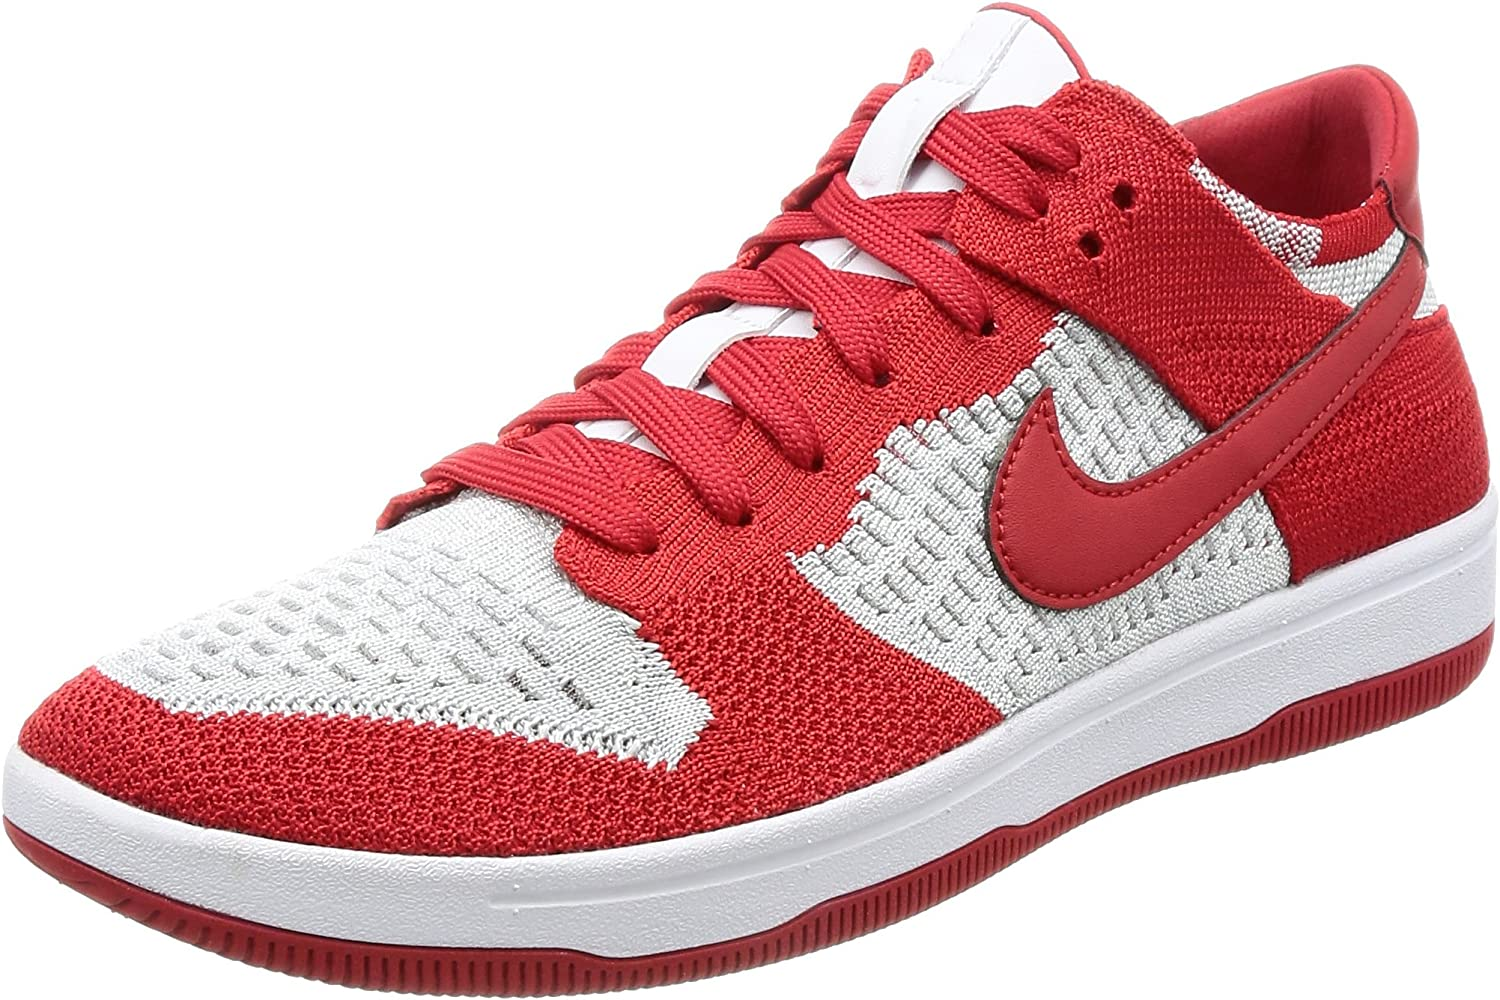 Nike Men s Dunk Flyknit Ankle-High Basketball Shoe